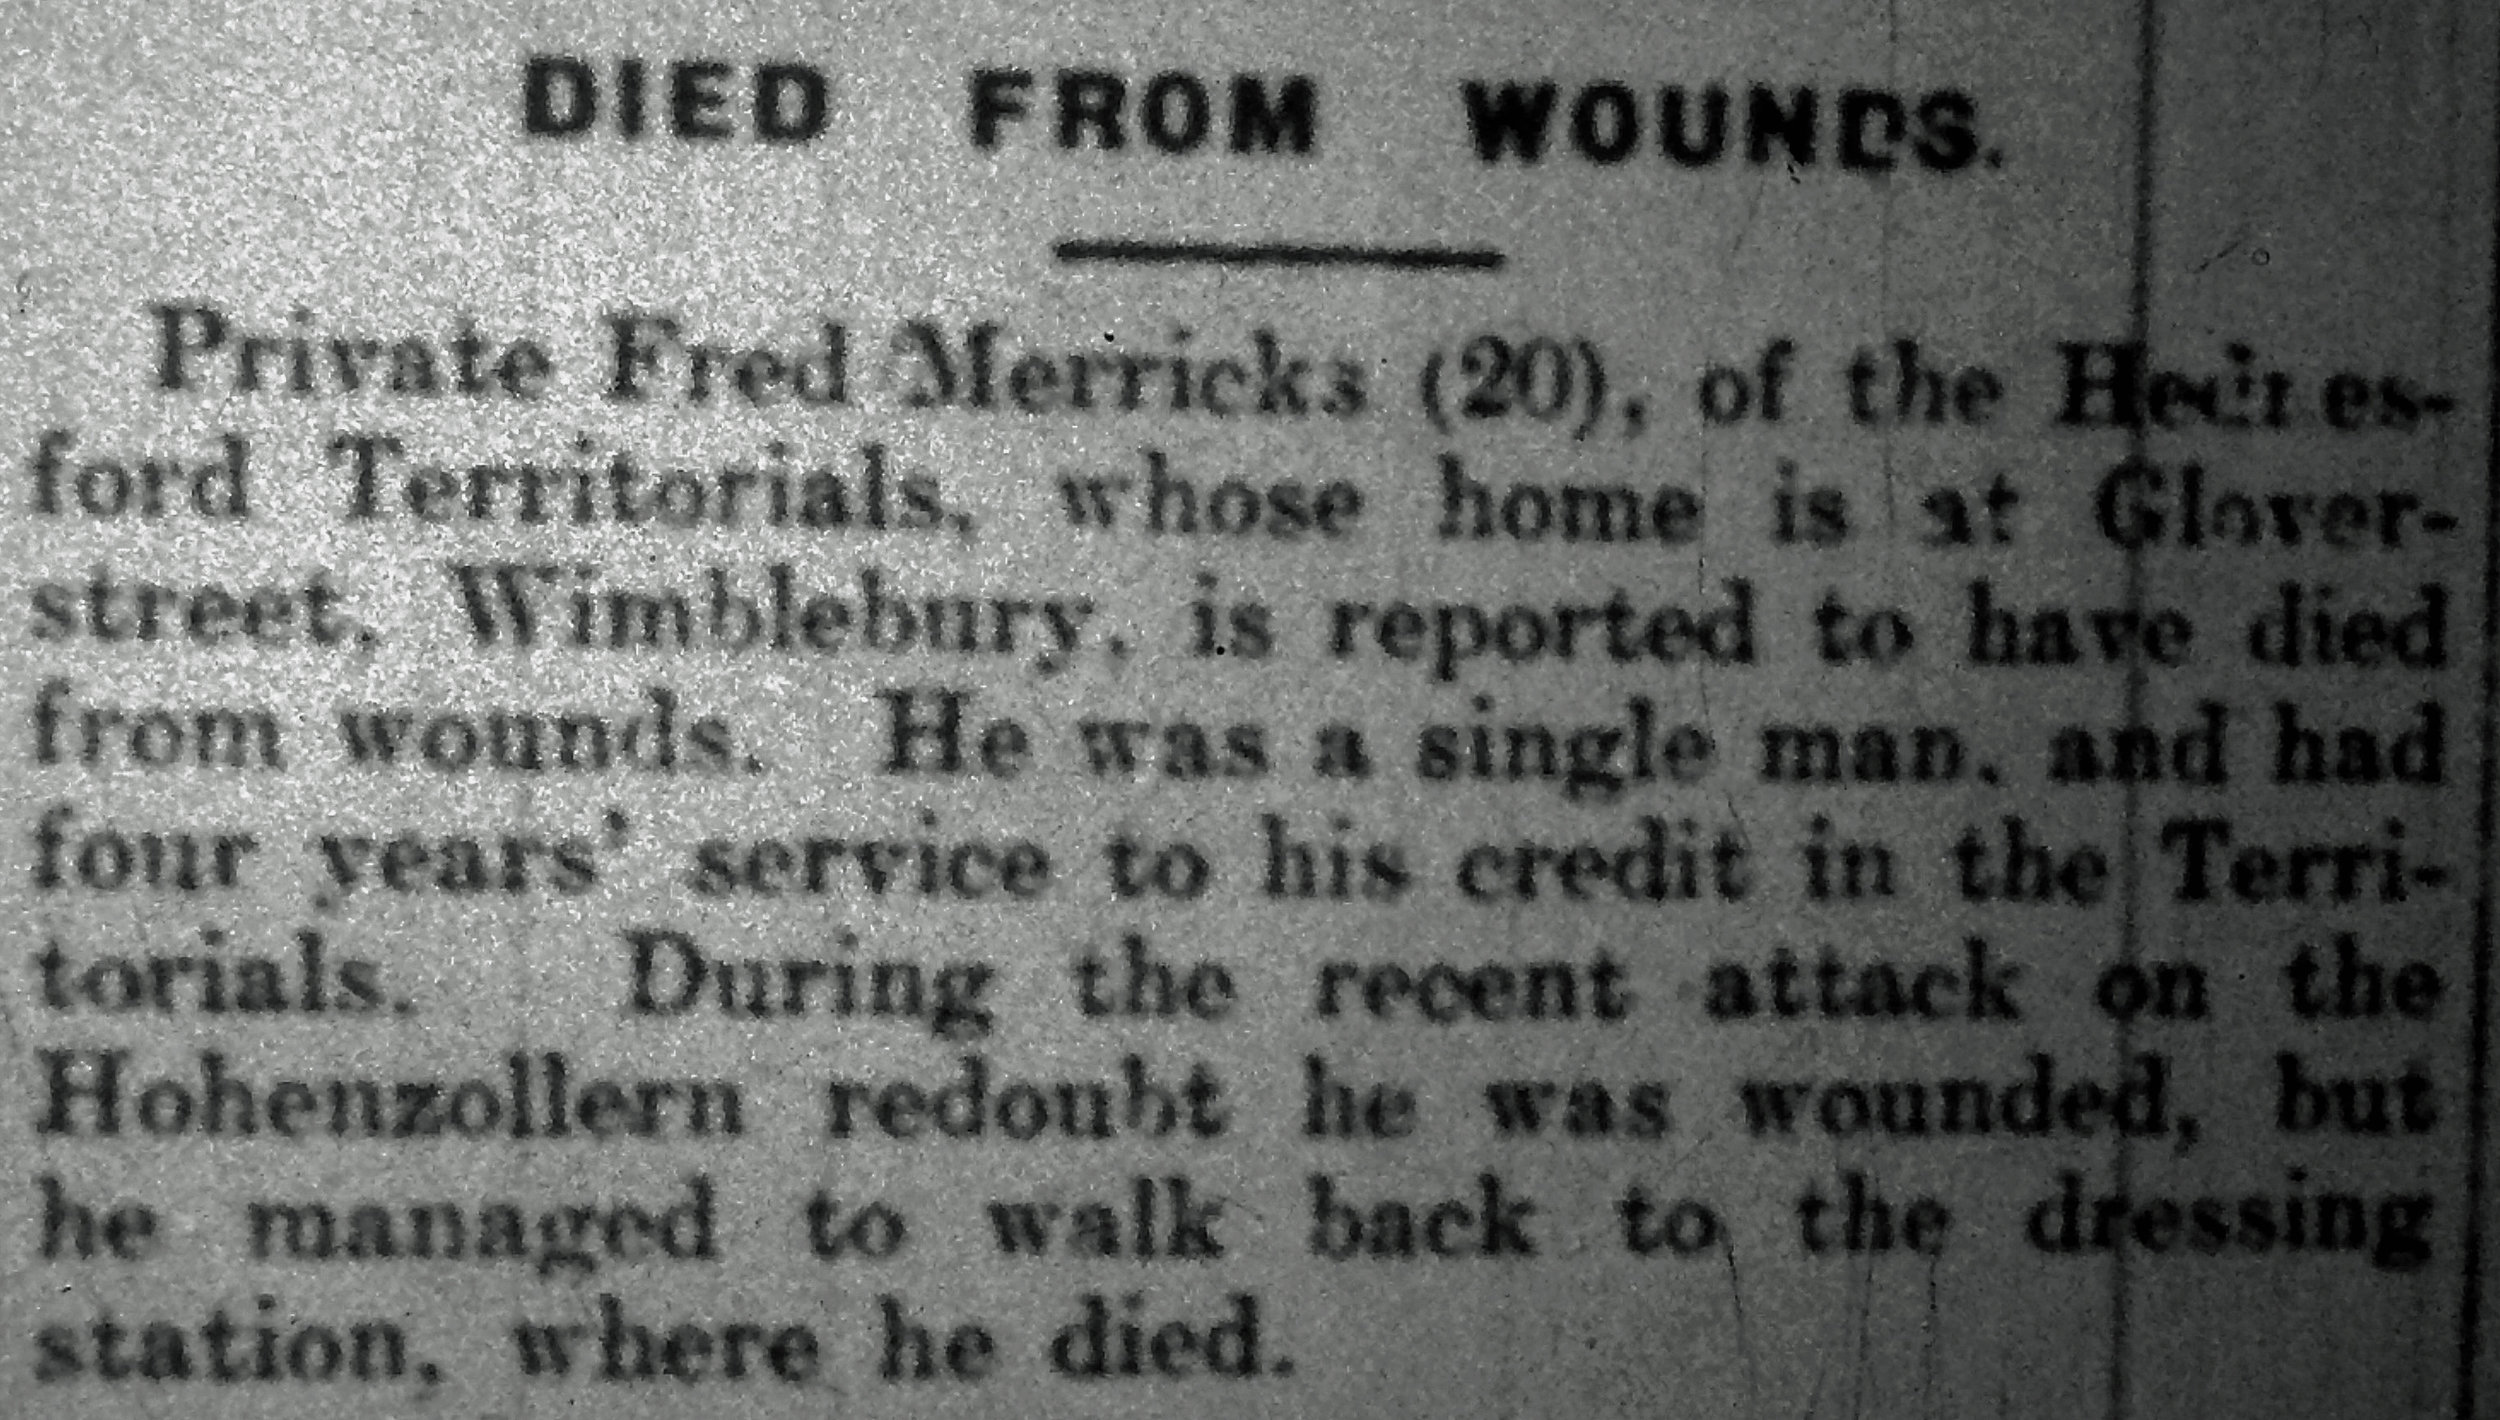 Extract from the Cannock Advertiser edition of Saturday 30 October 1915